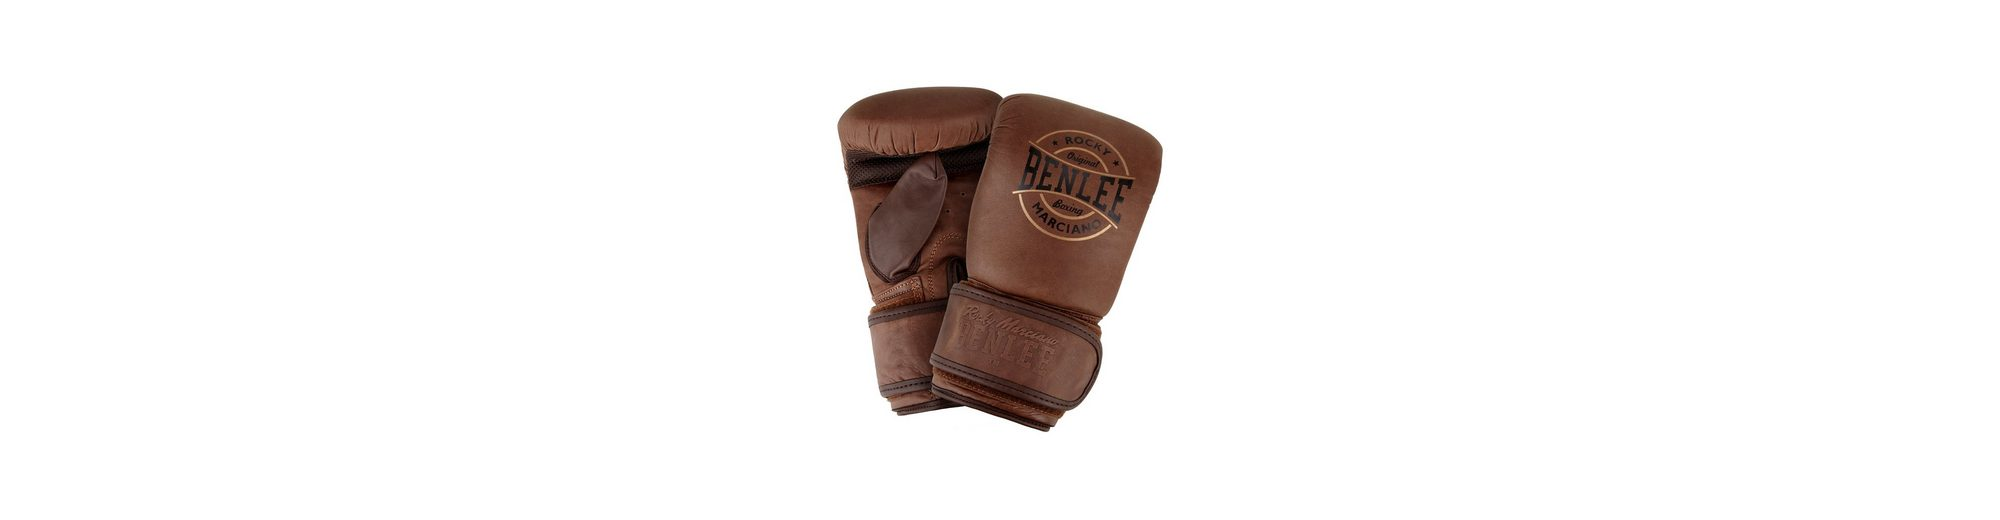 Benlee Rocky Marciano Boxhandschuhe DALEY »DALEY«